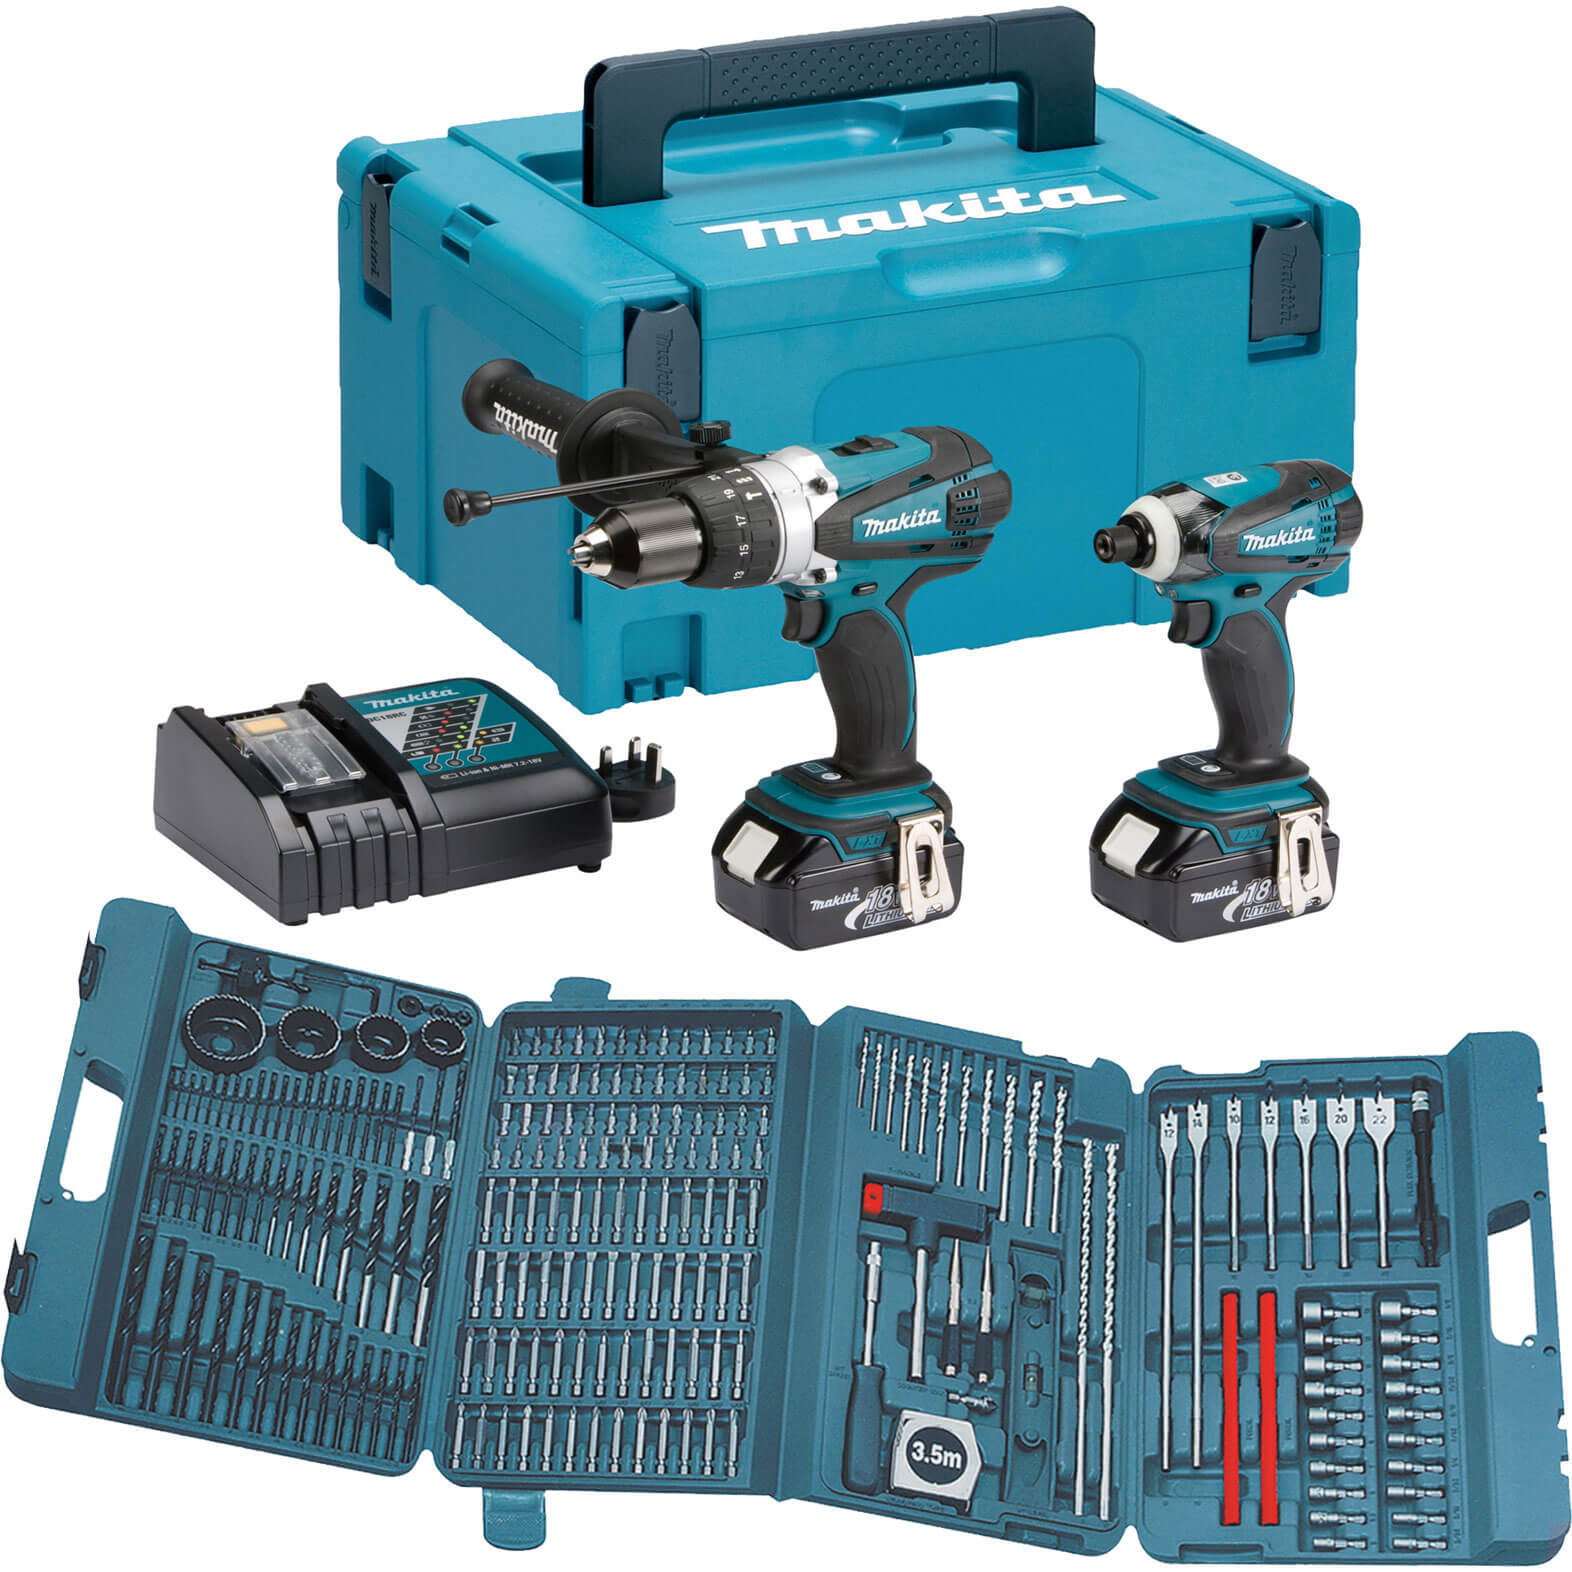 Image of Makita DLX2005MJ 18v Cordless Combi Drill & Impact Driver with 216 Piece Bit Set, 2 Lithium Ion Batteries 4ah